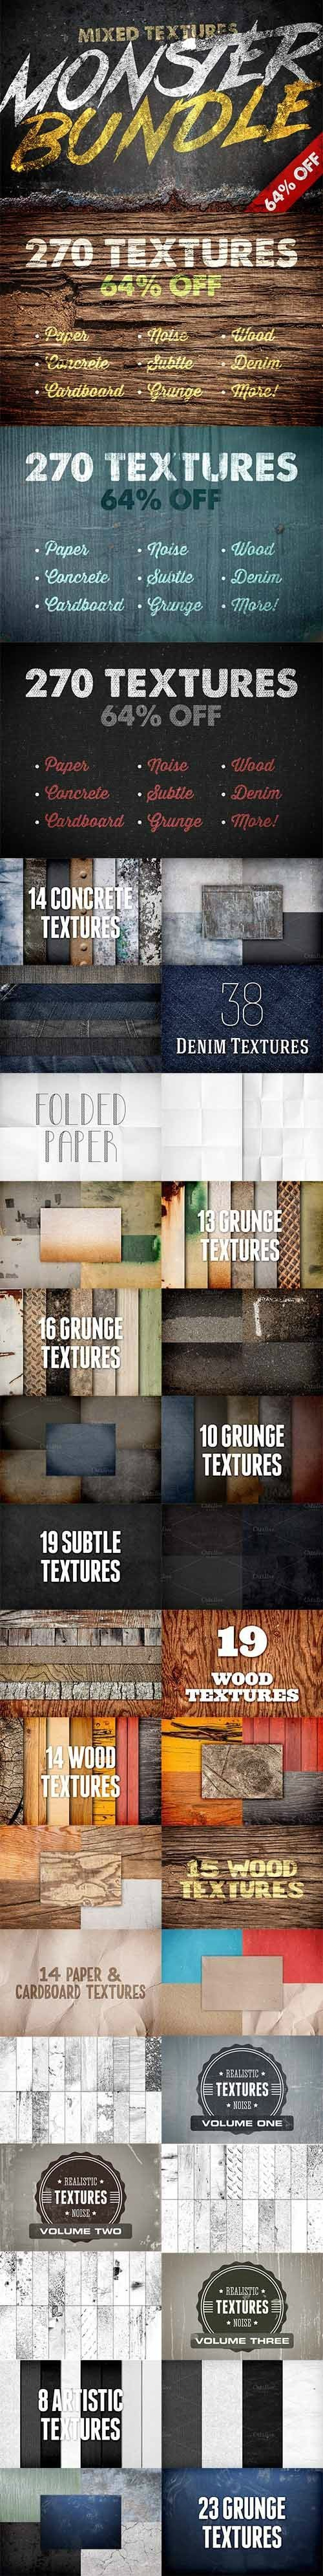 CreativeMarket - Mixed Texture Monster Bundle - 270 Textures